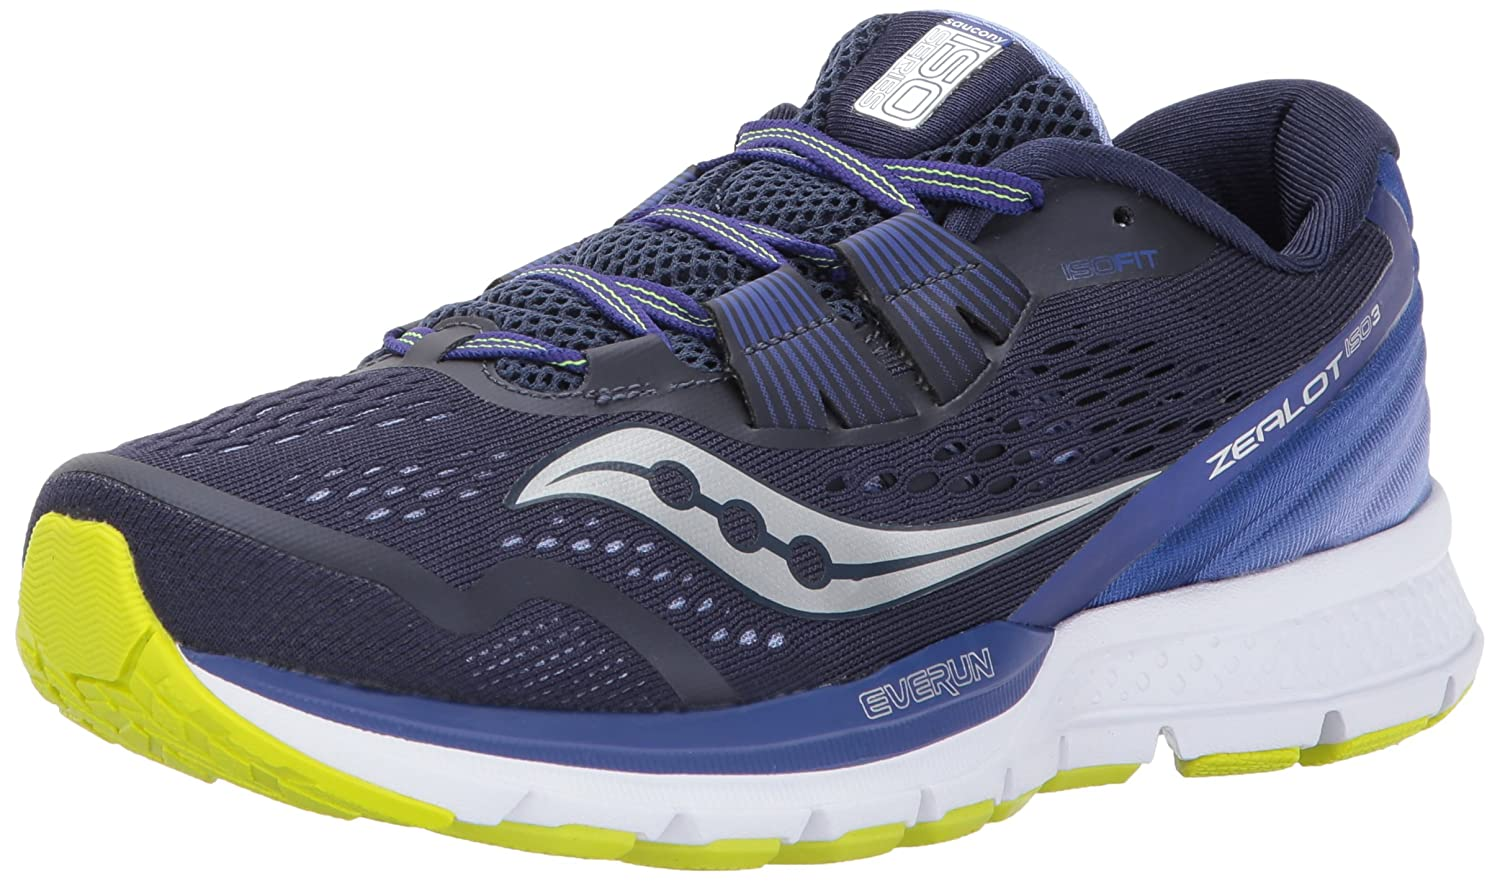 Saucony Women's Zealot Iso 3 Running Shoe B01N0TK58I 11 B(M) US|Navy Purple